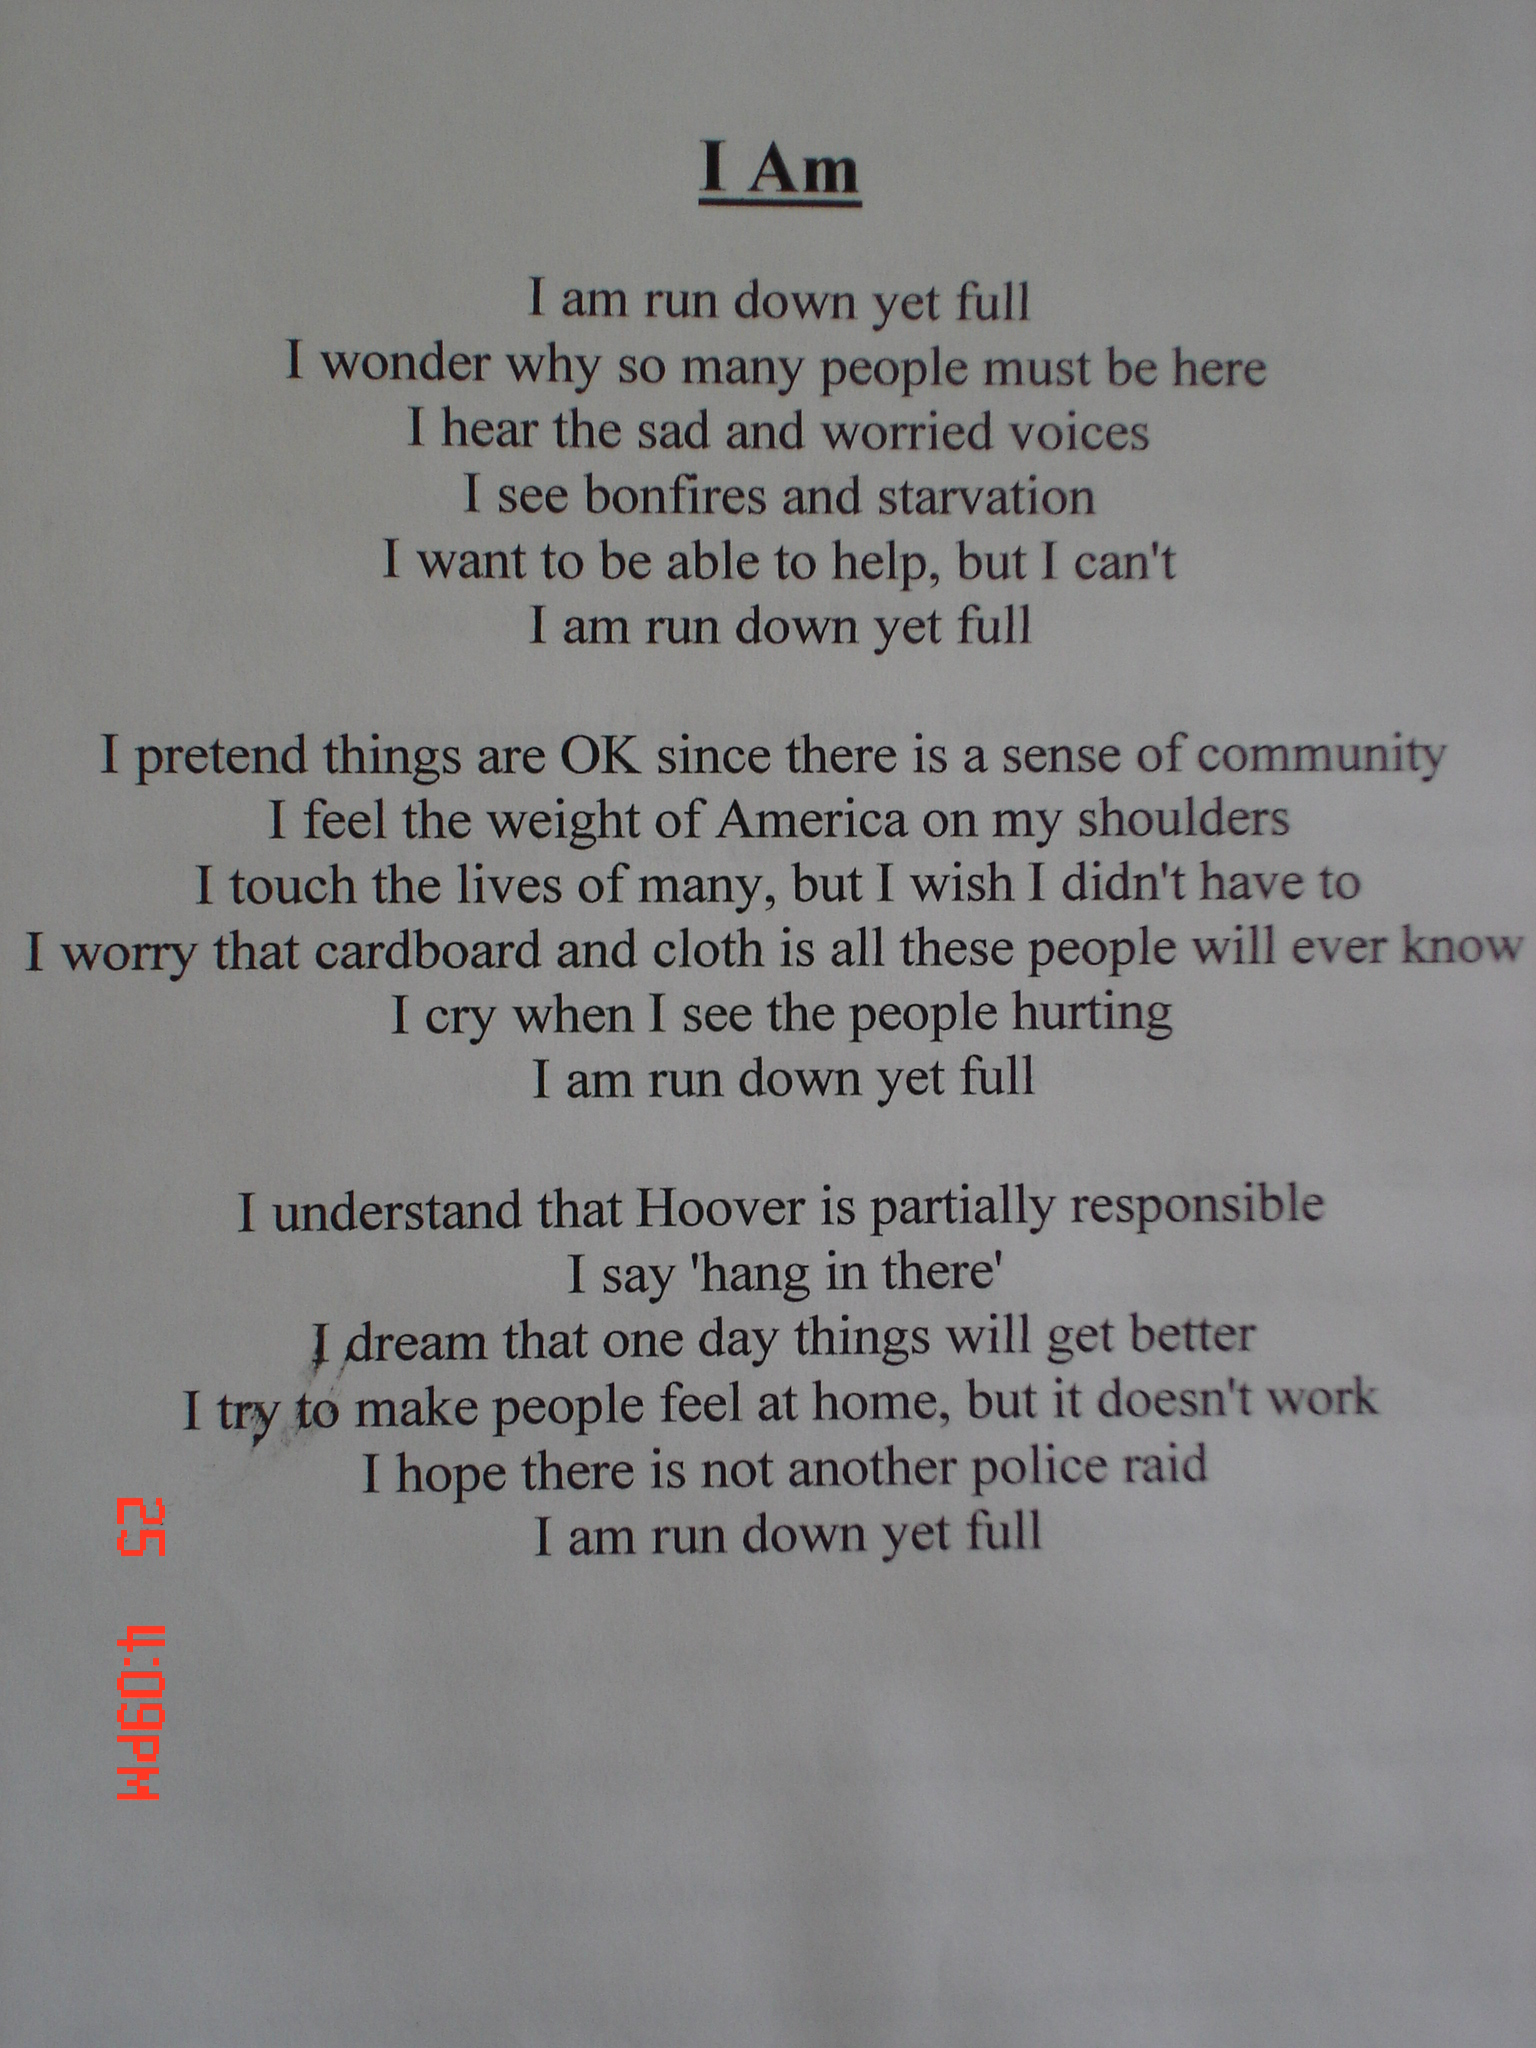 Examples Of I Am Poems